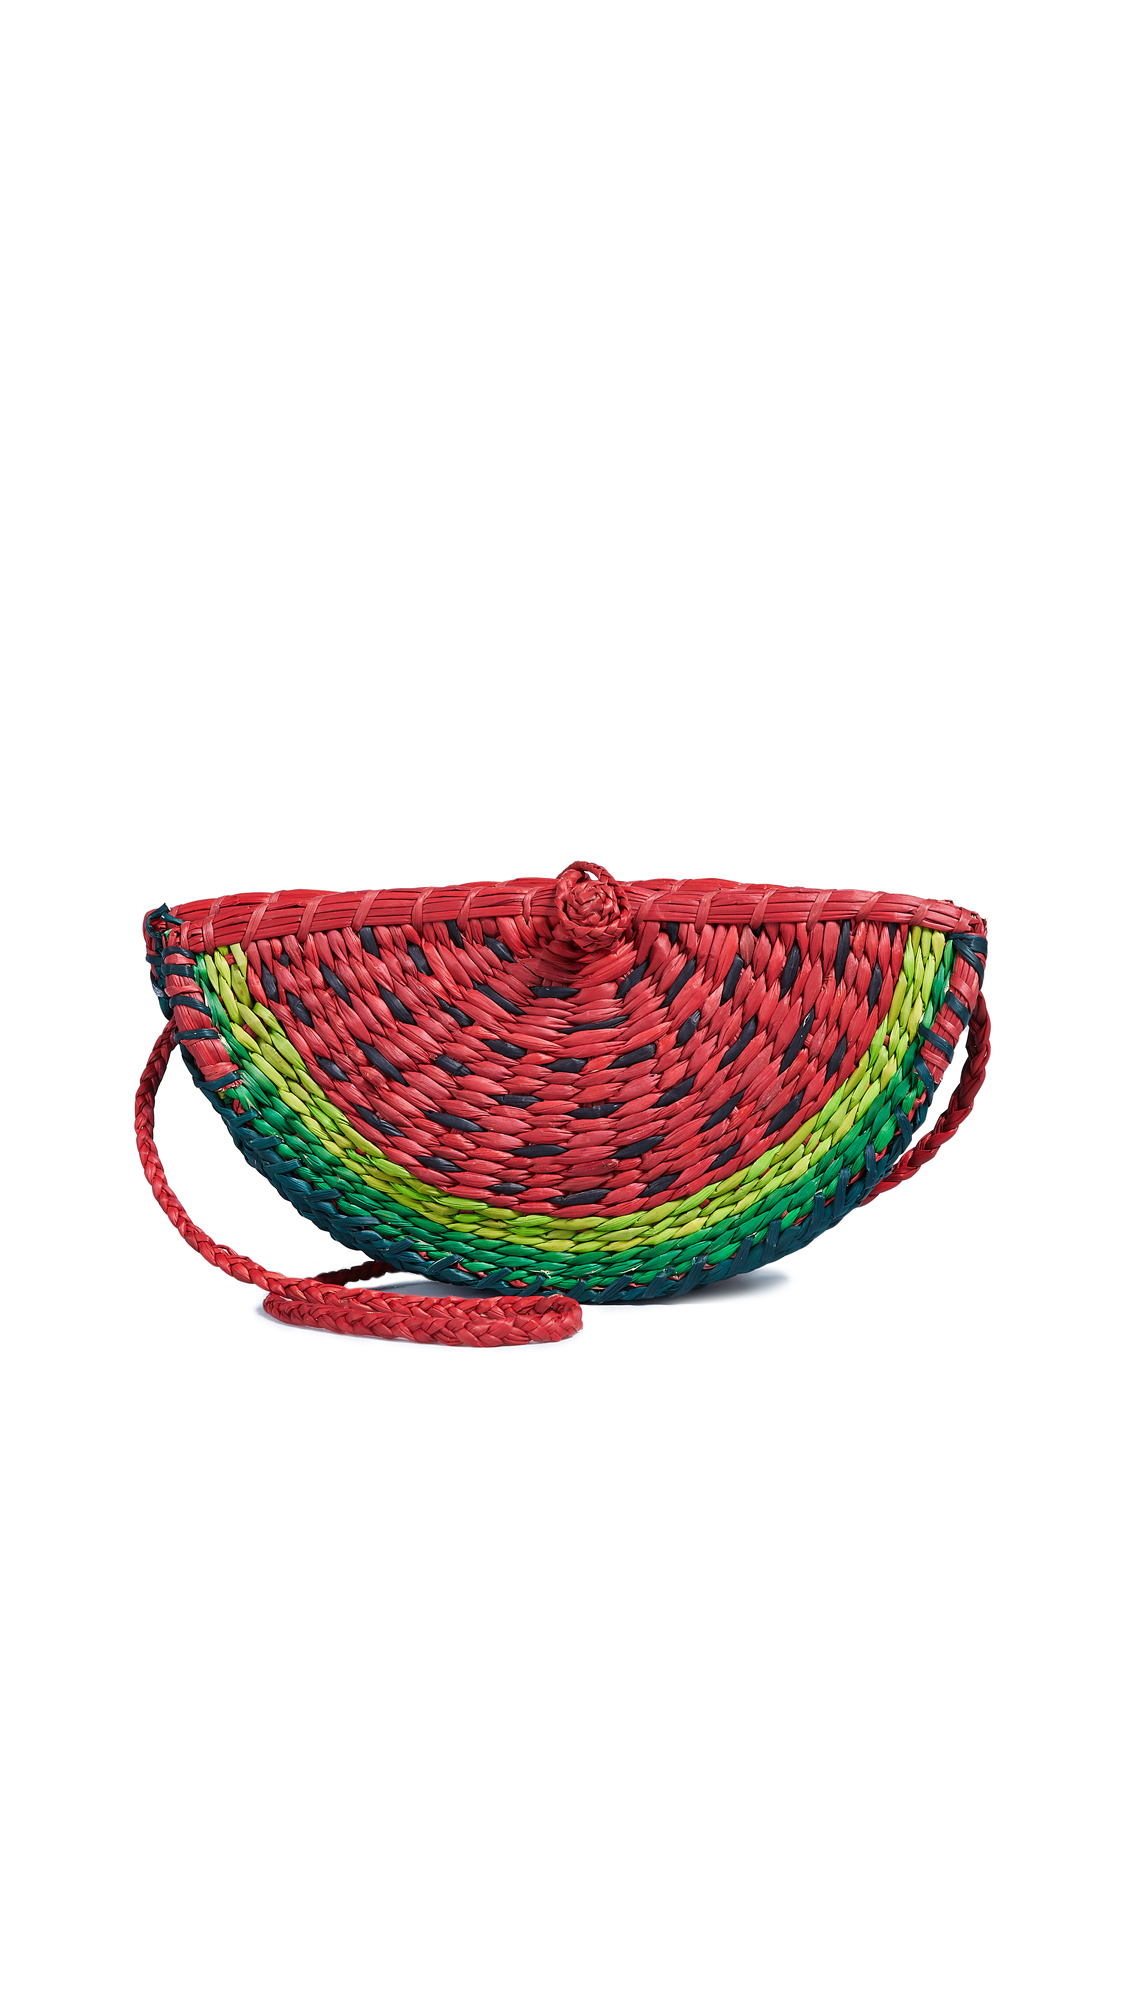 woven-bags-and-accessories-2018-novelty2